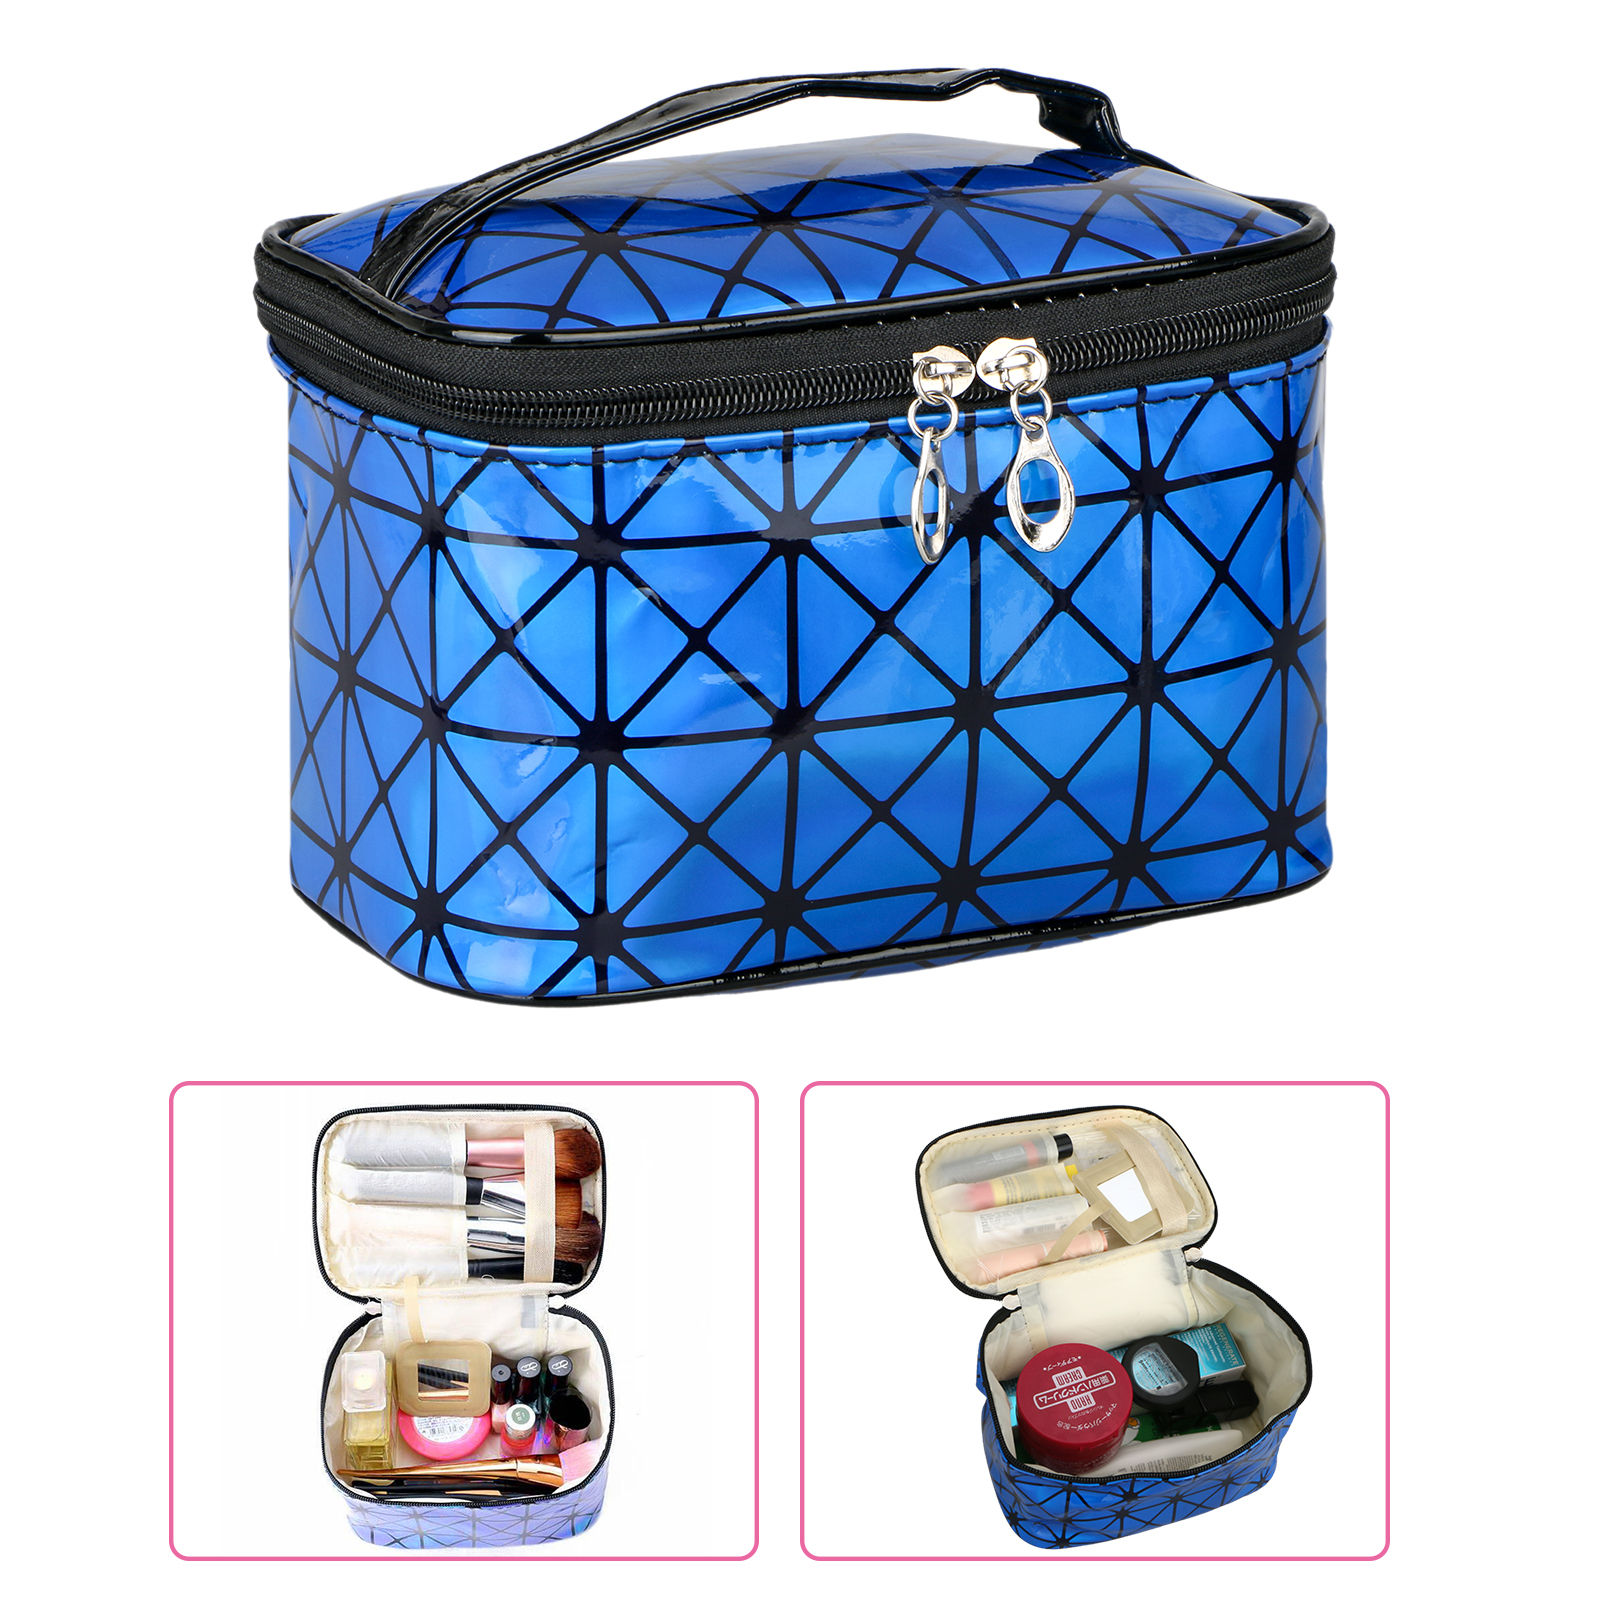 Travel Cosmetic Bag, Makeup Oil Case Pouch Jewelry Organizer for Women, Portable Multifunction Case Toiletry PU Leather Bags (Blue)